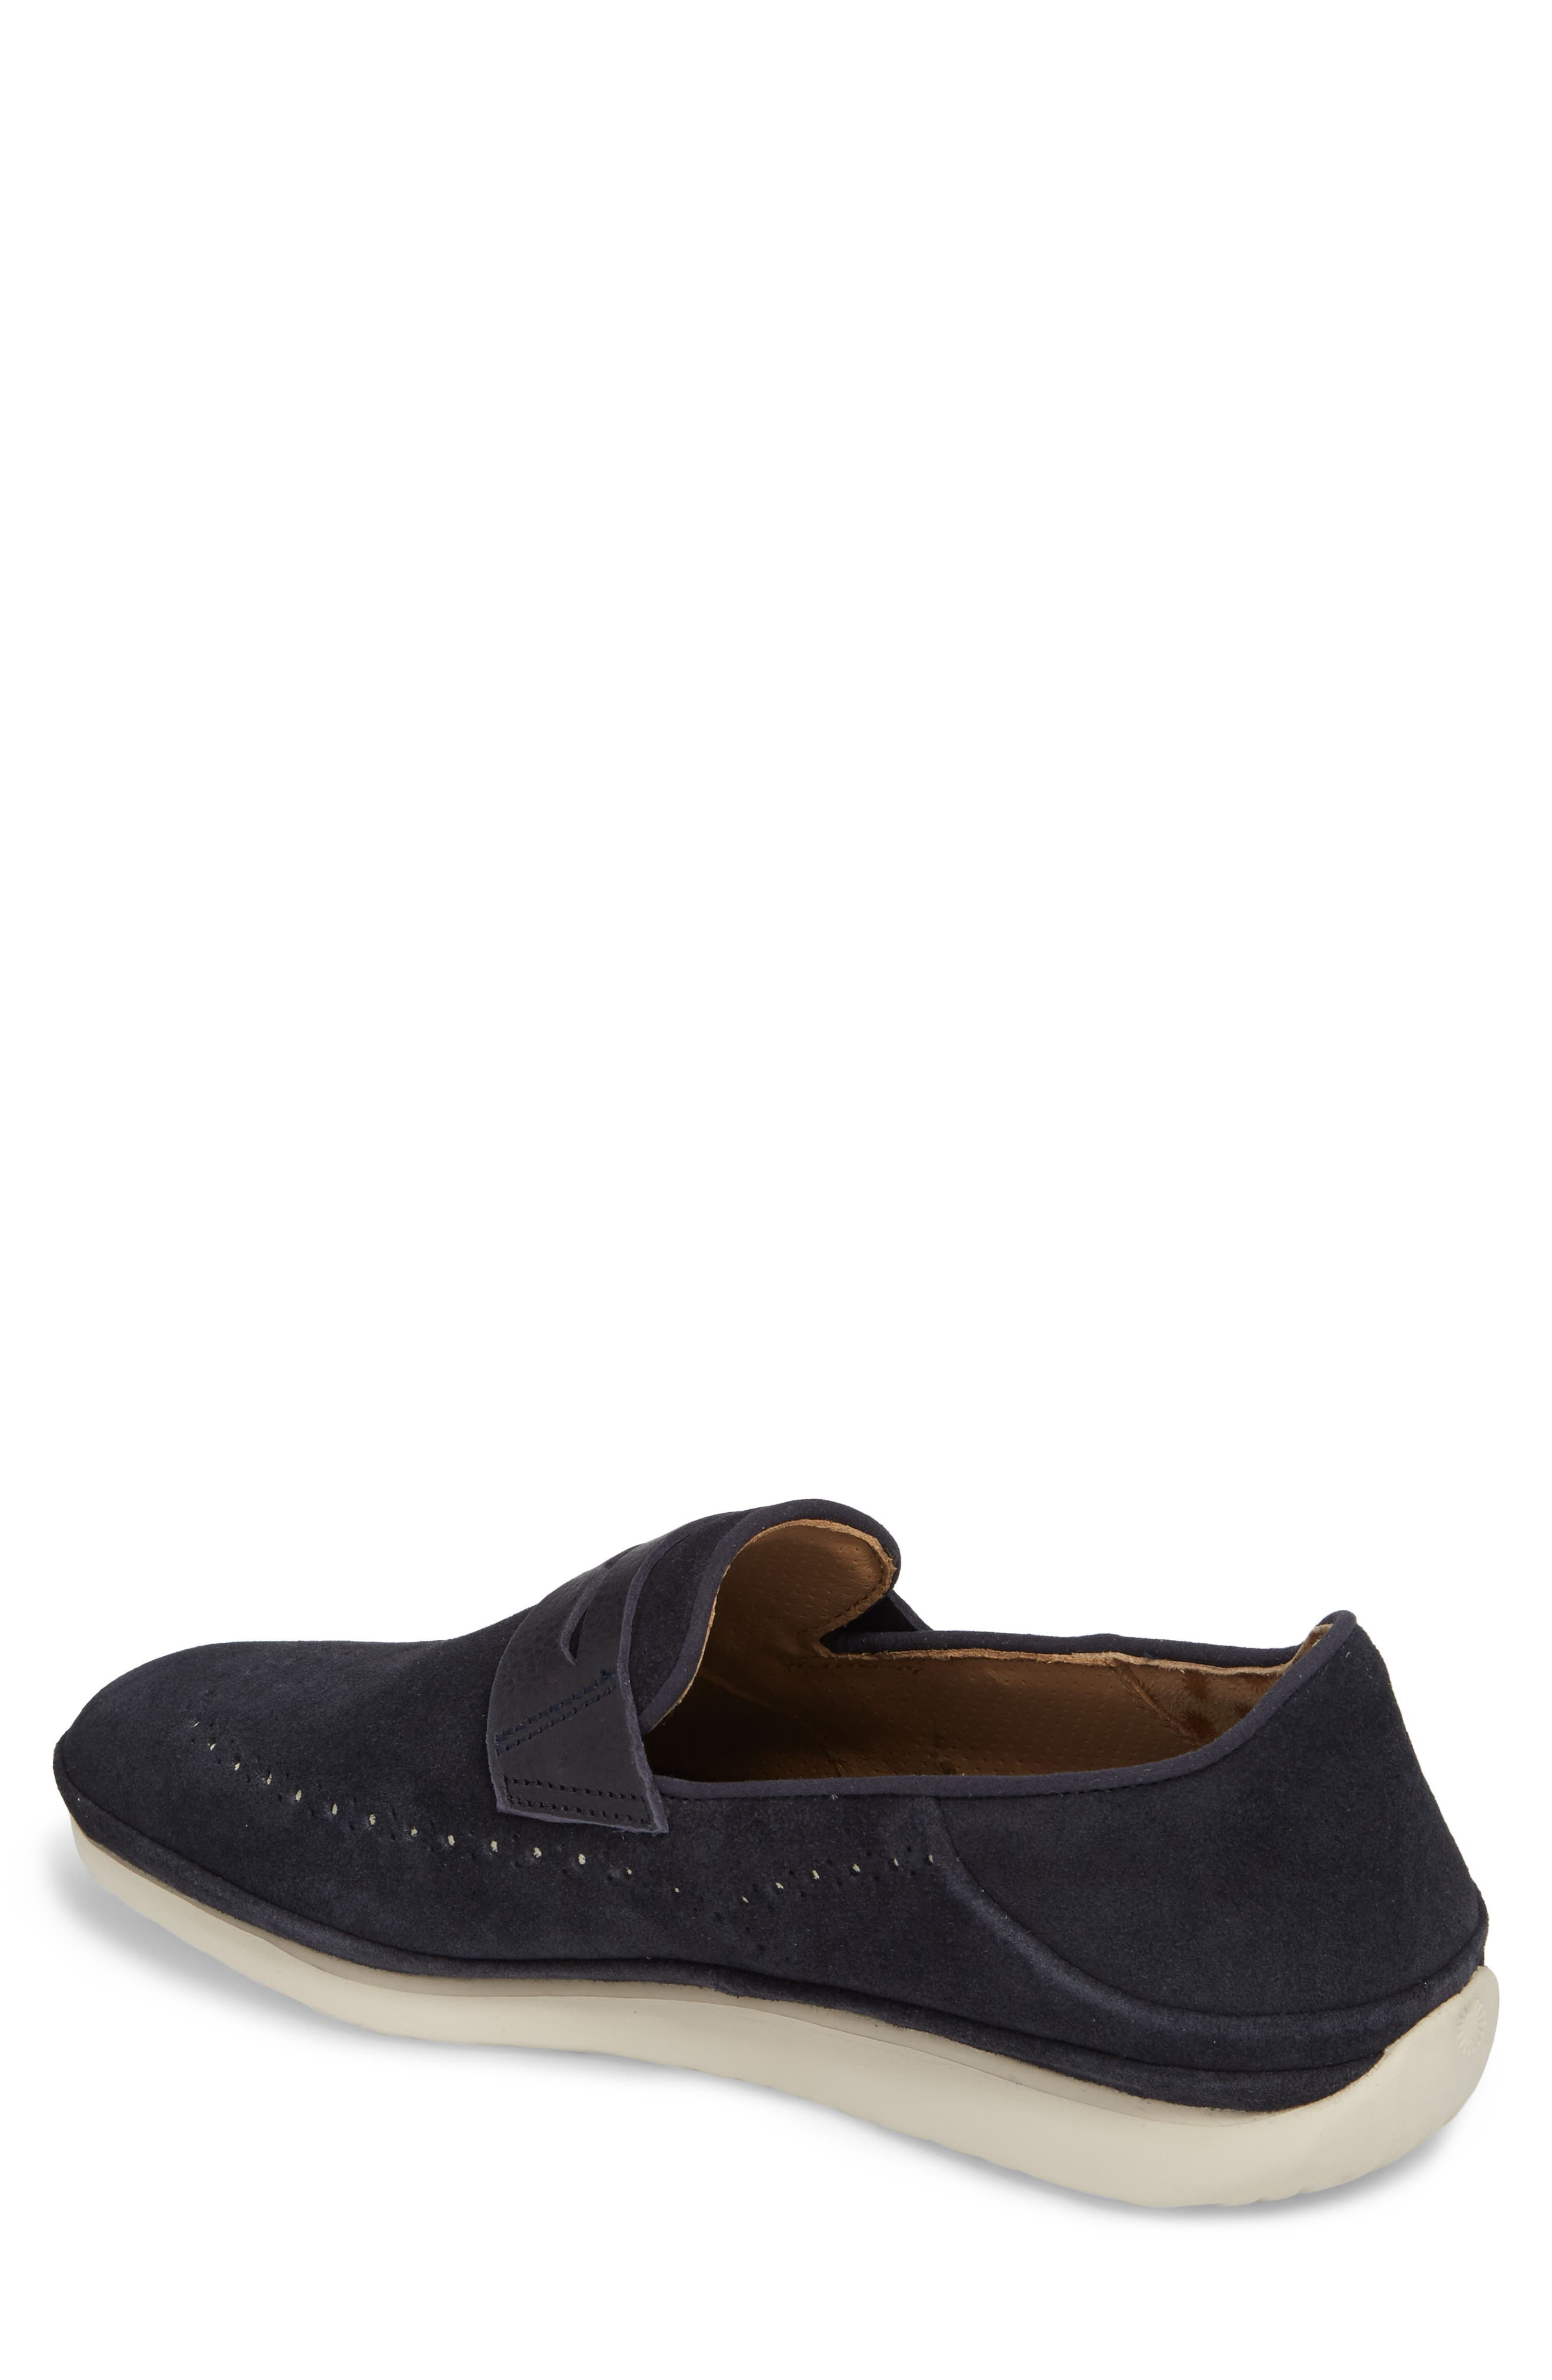 Cali Collapsible Wingtip Penny Loafer,                             Alternate thumbnail 2, color,                             Navy Leather